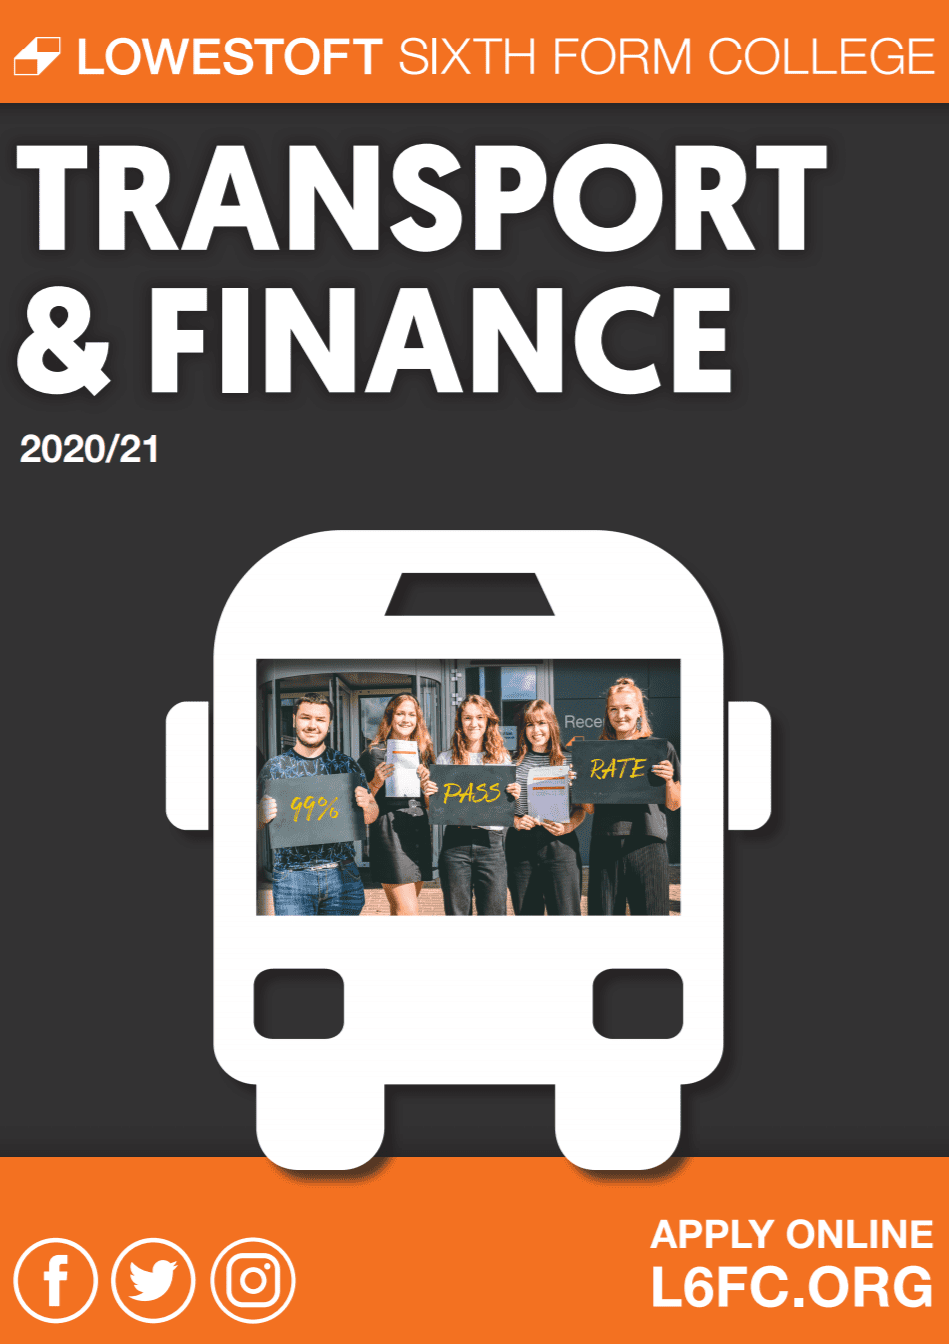 Transport and Finance